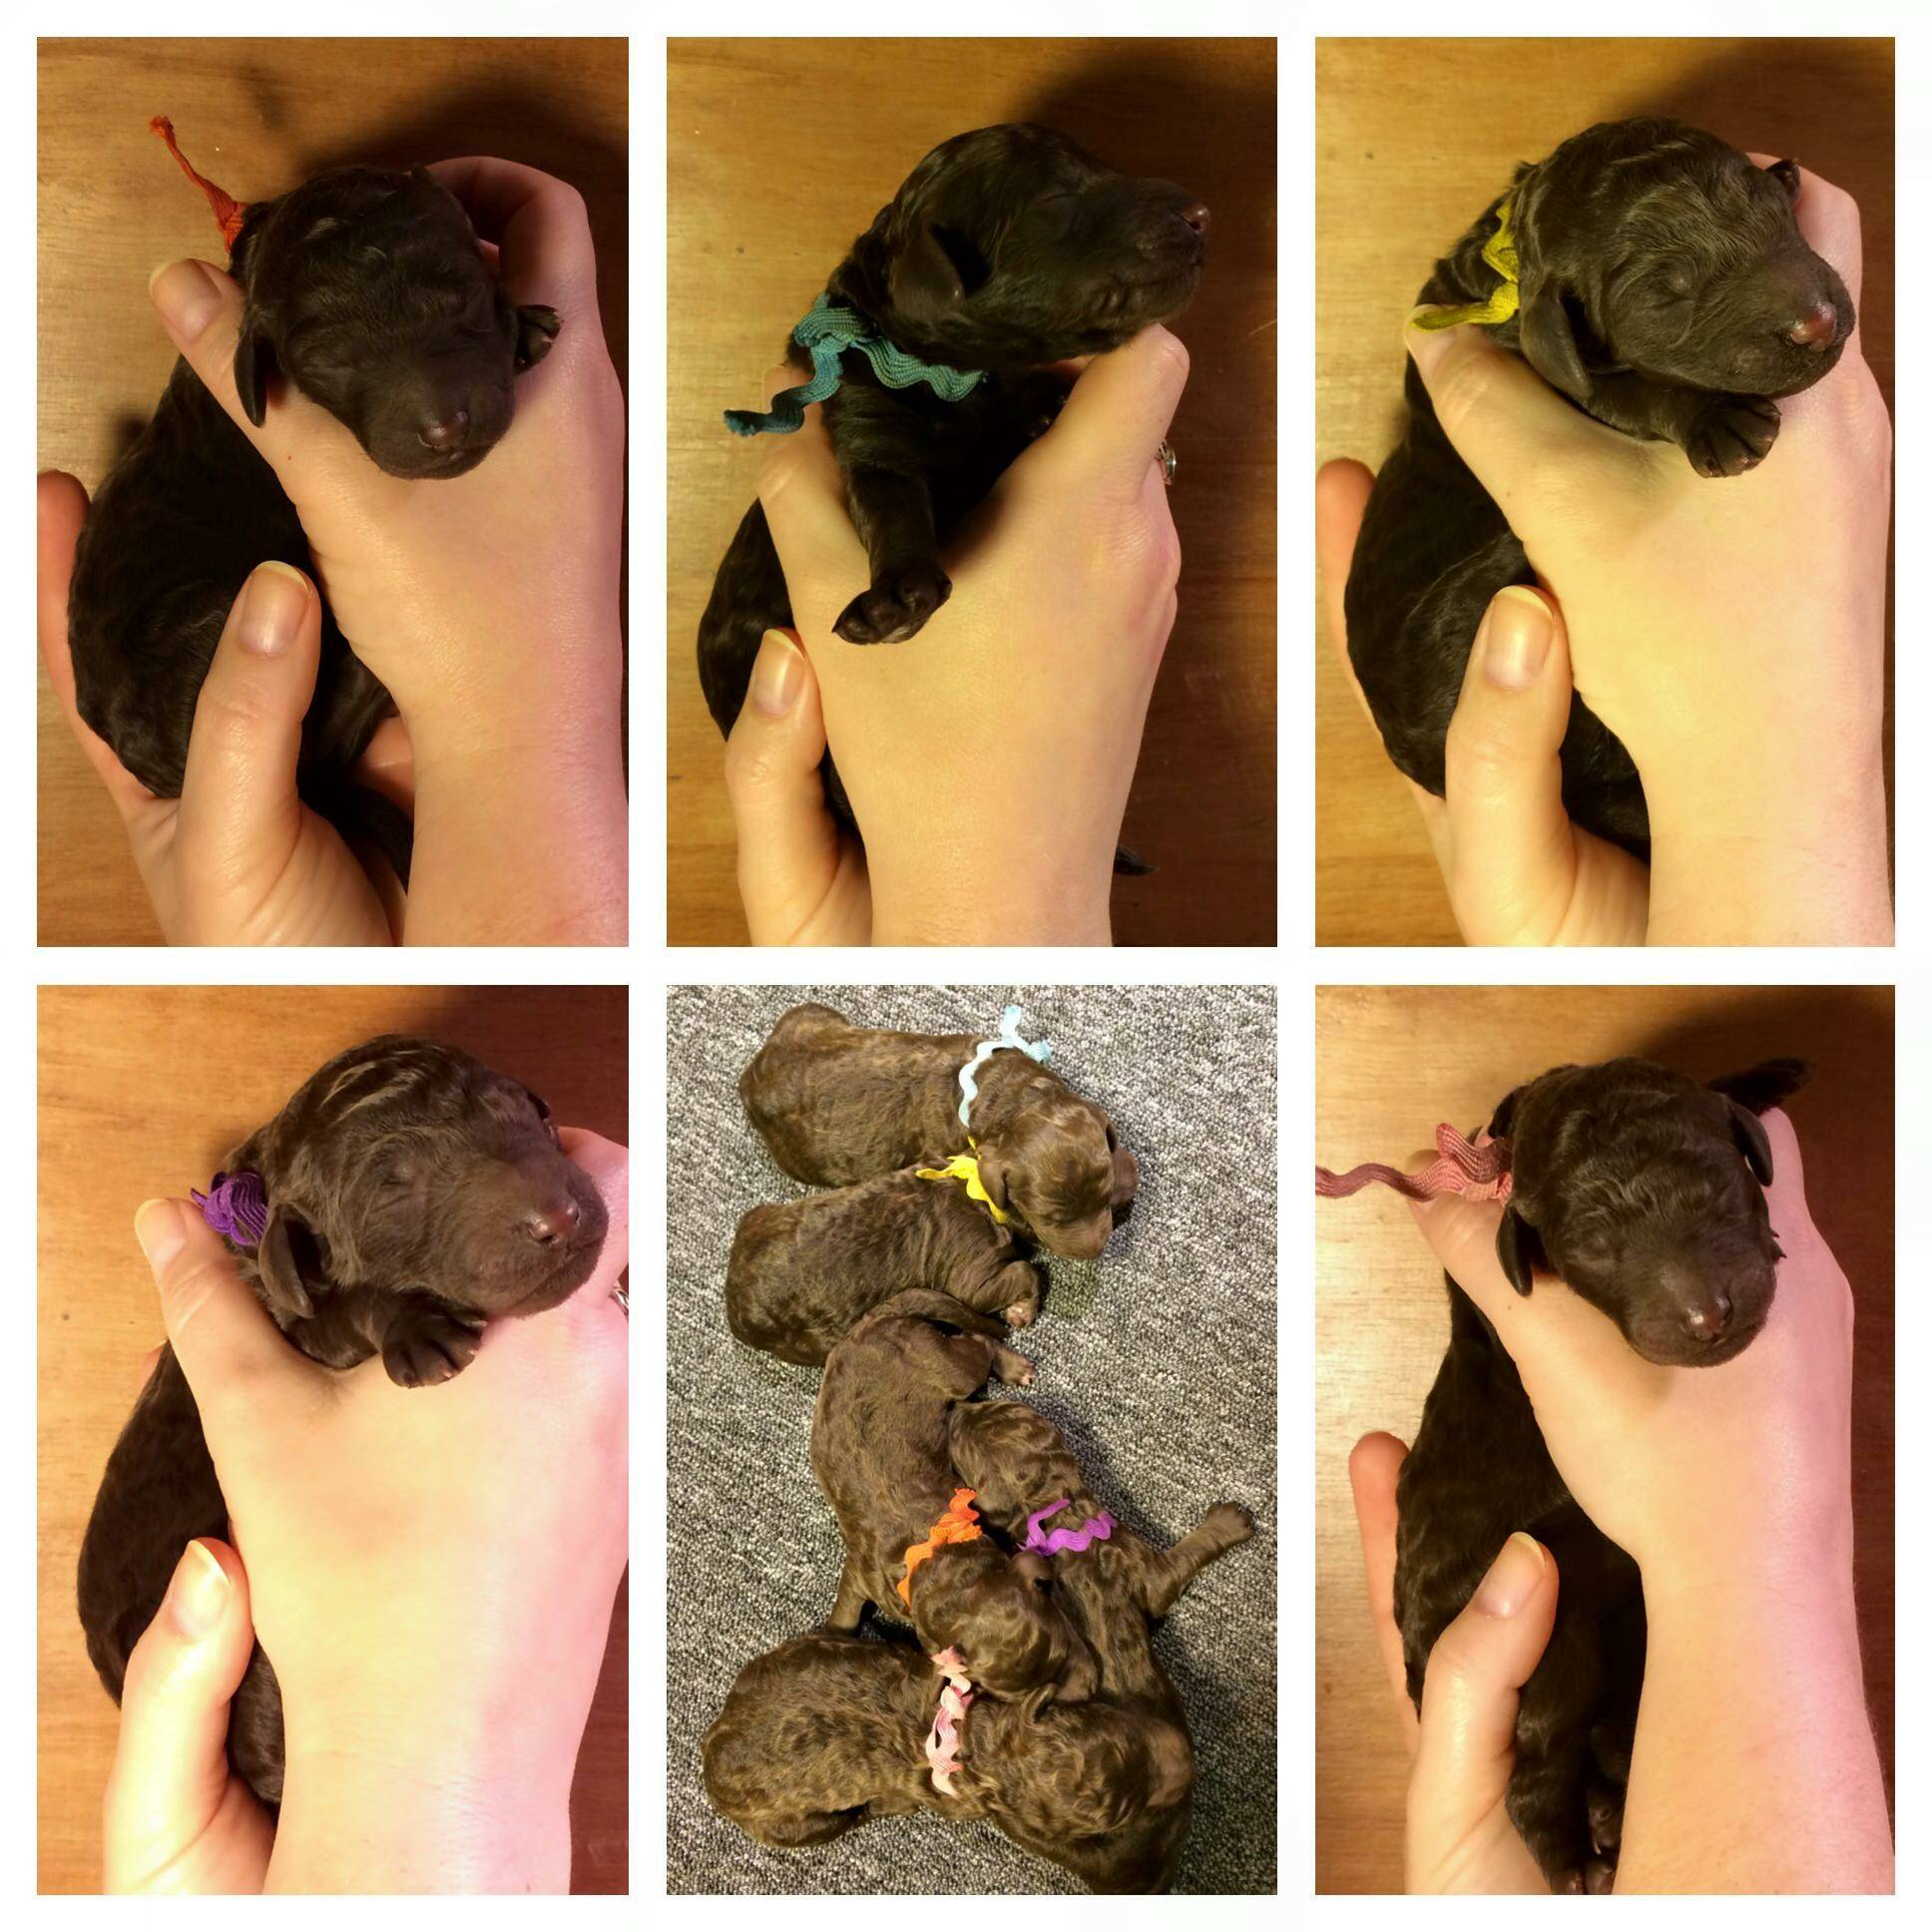 The puppies are now 24 hours old